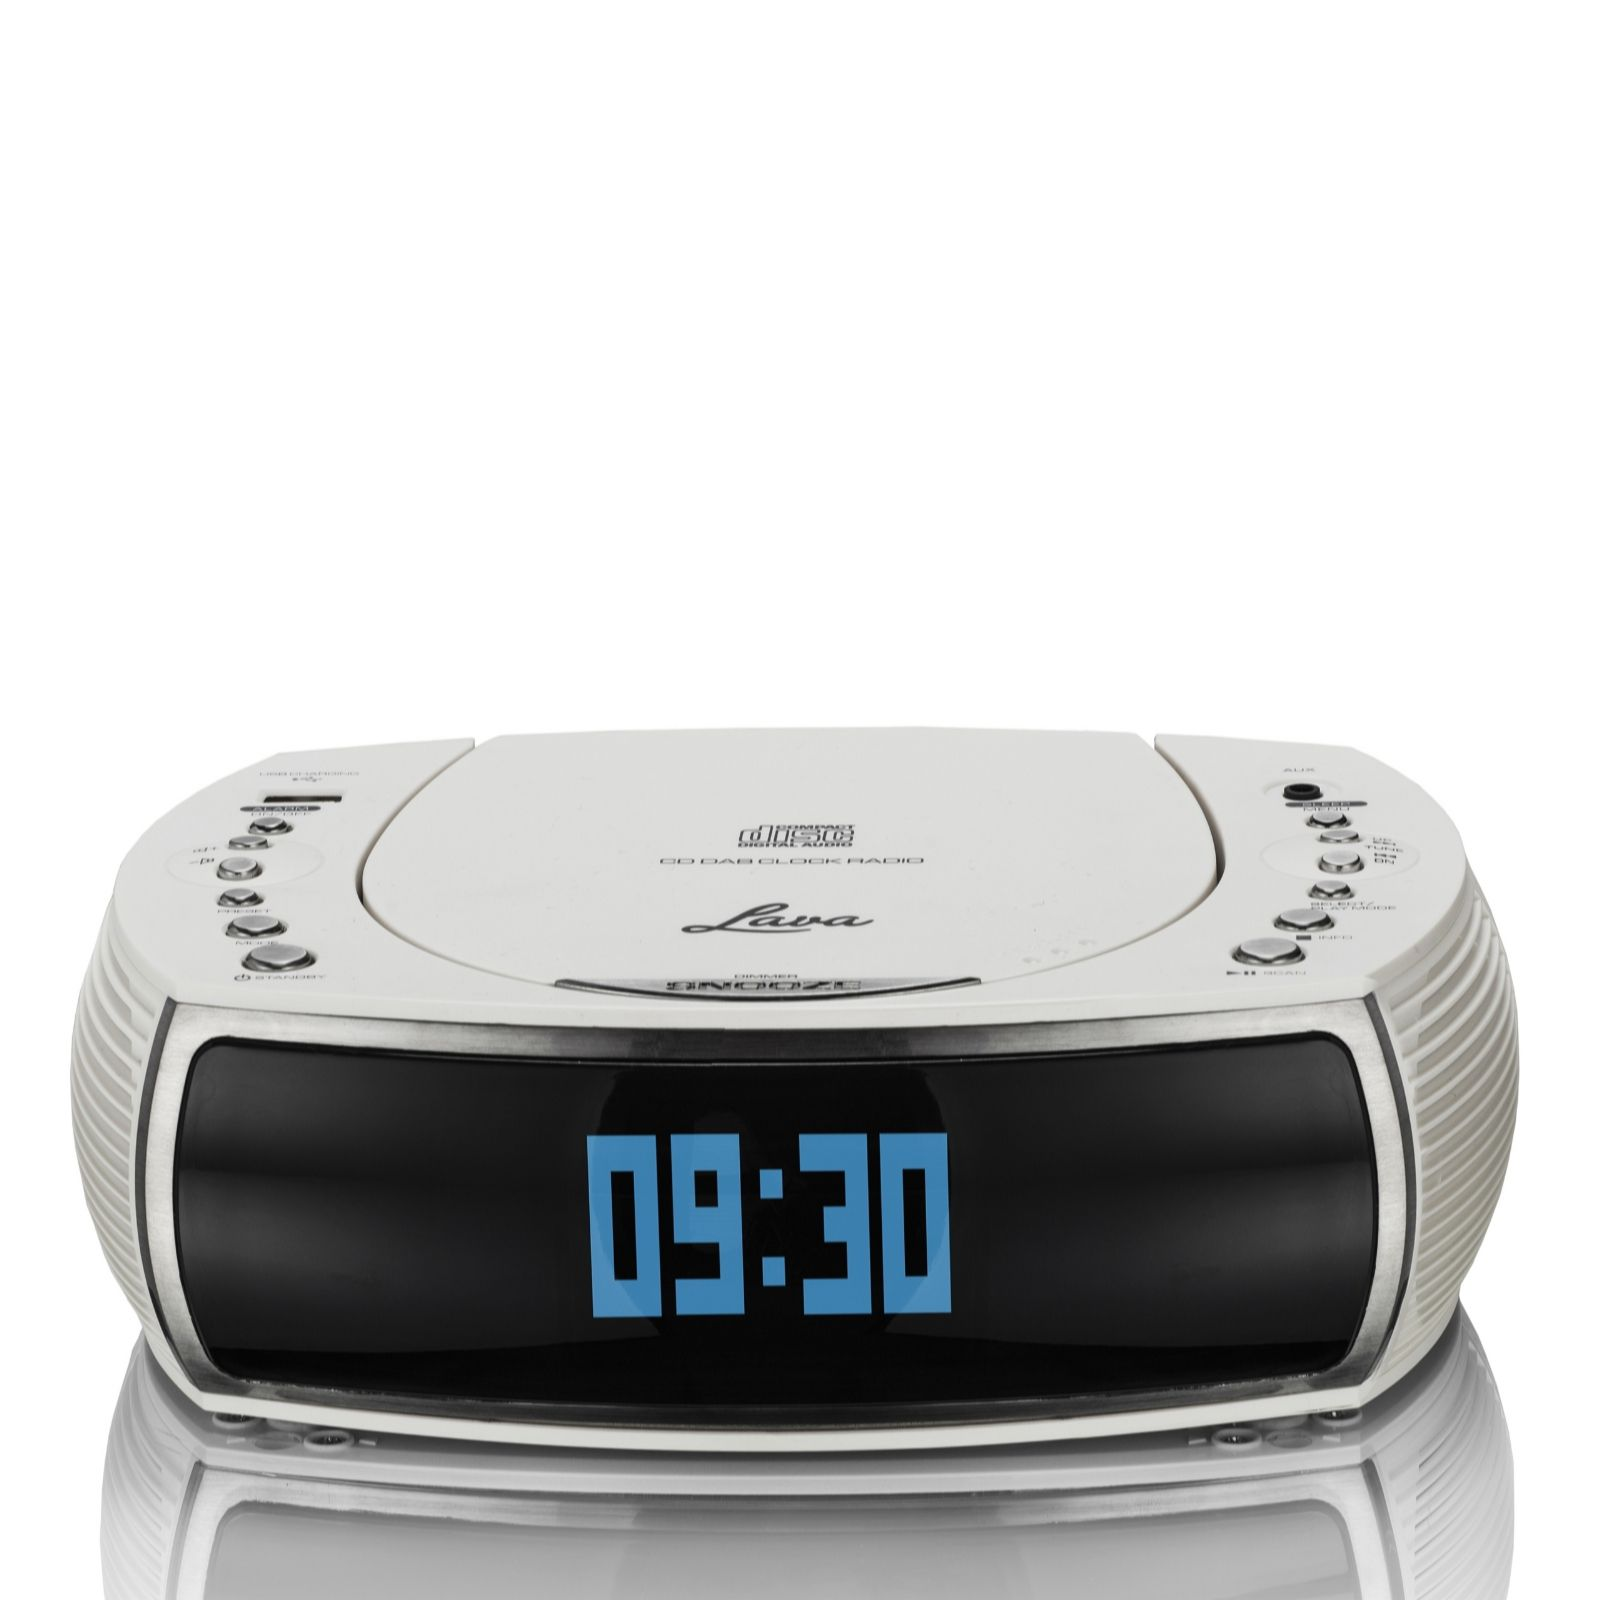 Bedside Alarm Clock Digital Lava Bedside Alarm Clock Dab Dab Digital And Fm Radio With